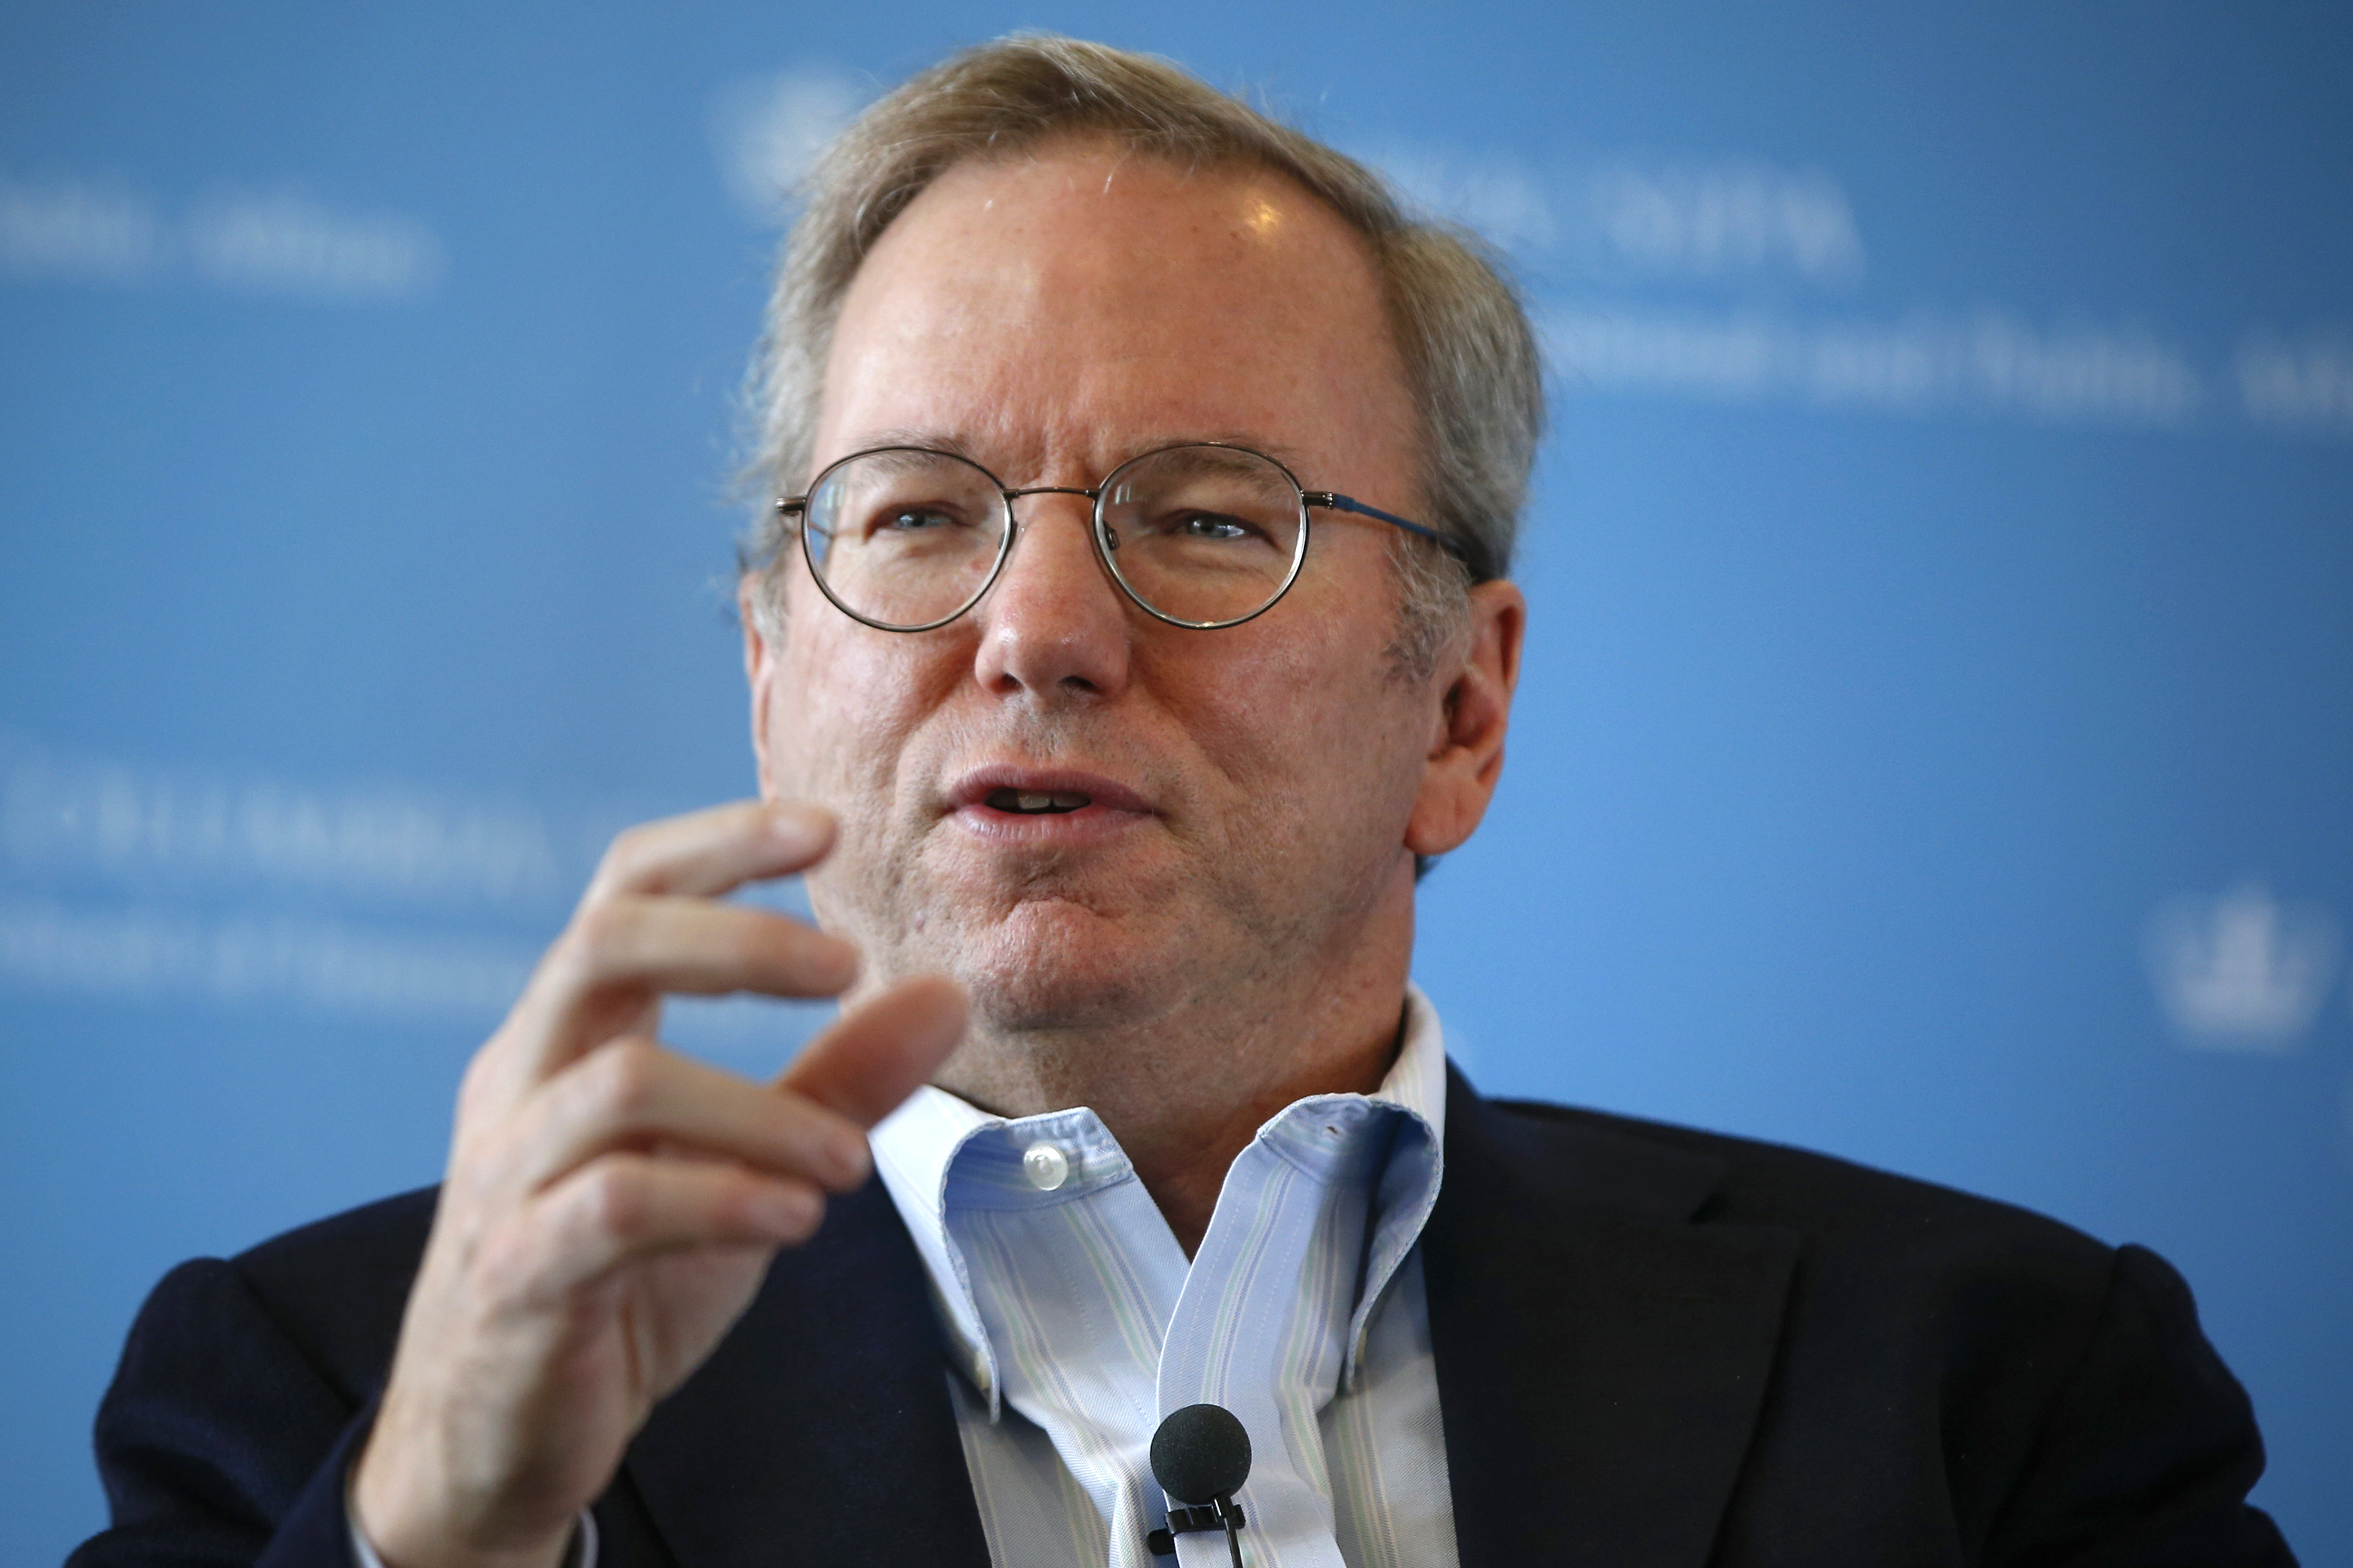 Google Executive Chairman Eric Schmidt's New York Times op-ed described the good, the bad and the truly dangerous parts of the Internet.